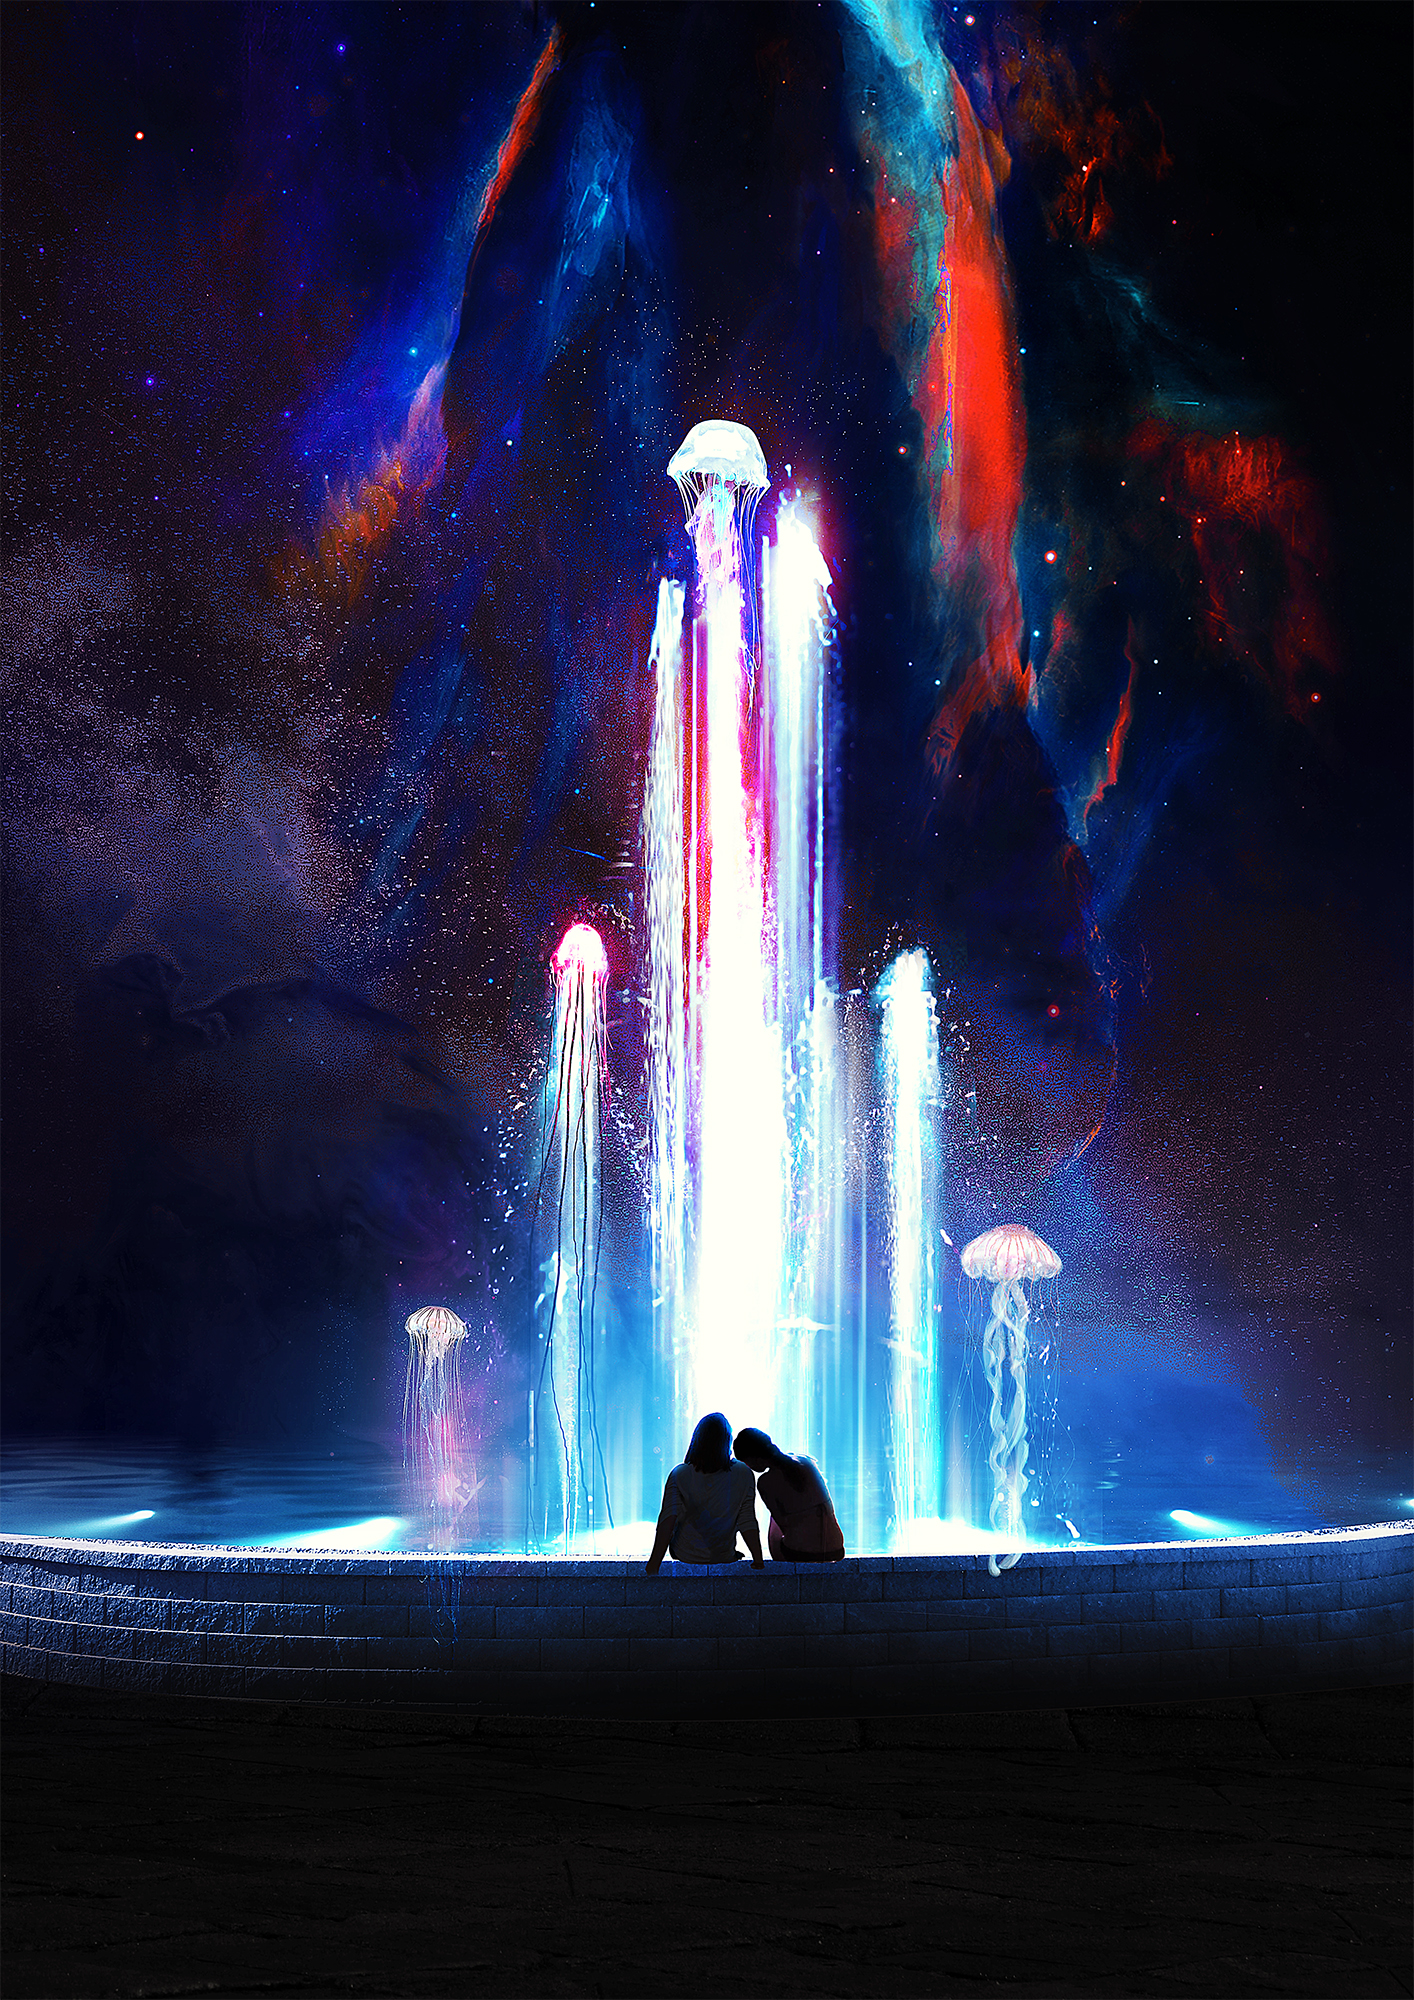 General 1414x2000 t1na stars fountain women space jellyfish digital art